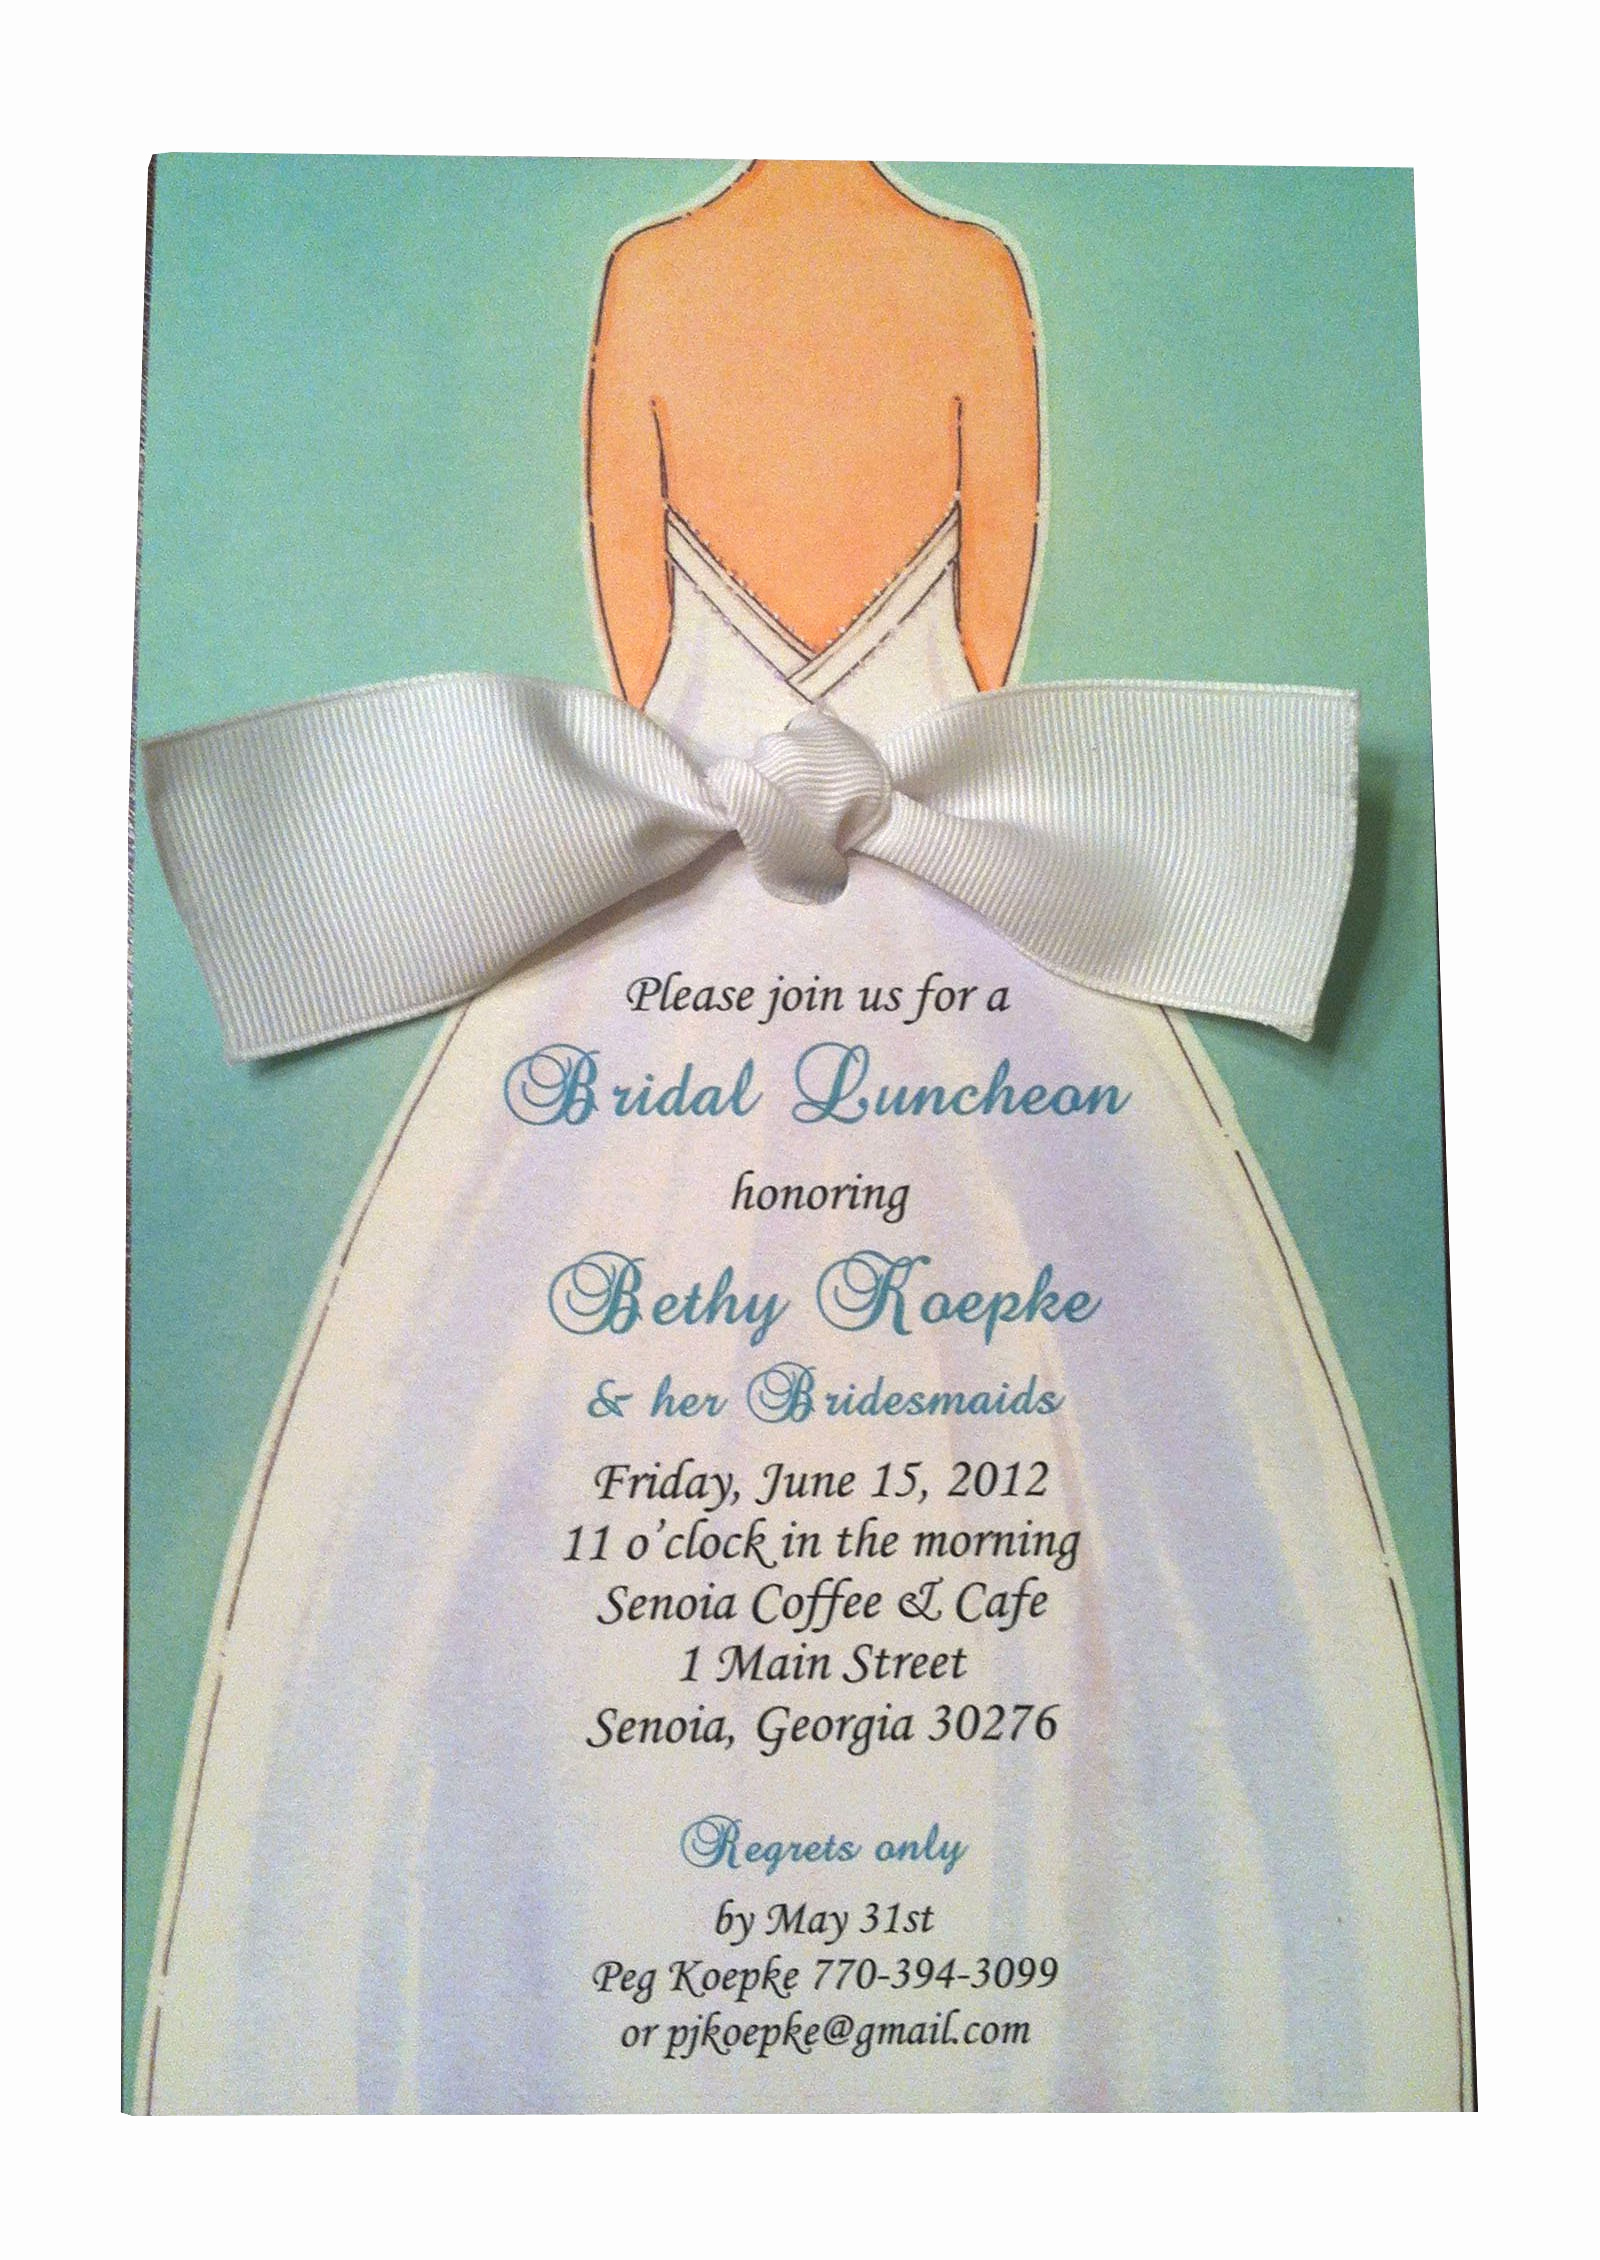 Bridal Brunch Invitation Wording Fresh Disney Princesses Birthday Invitations Disney Princesses